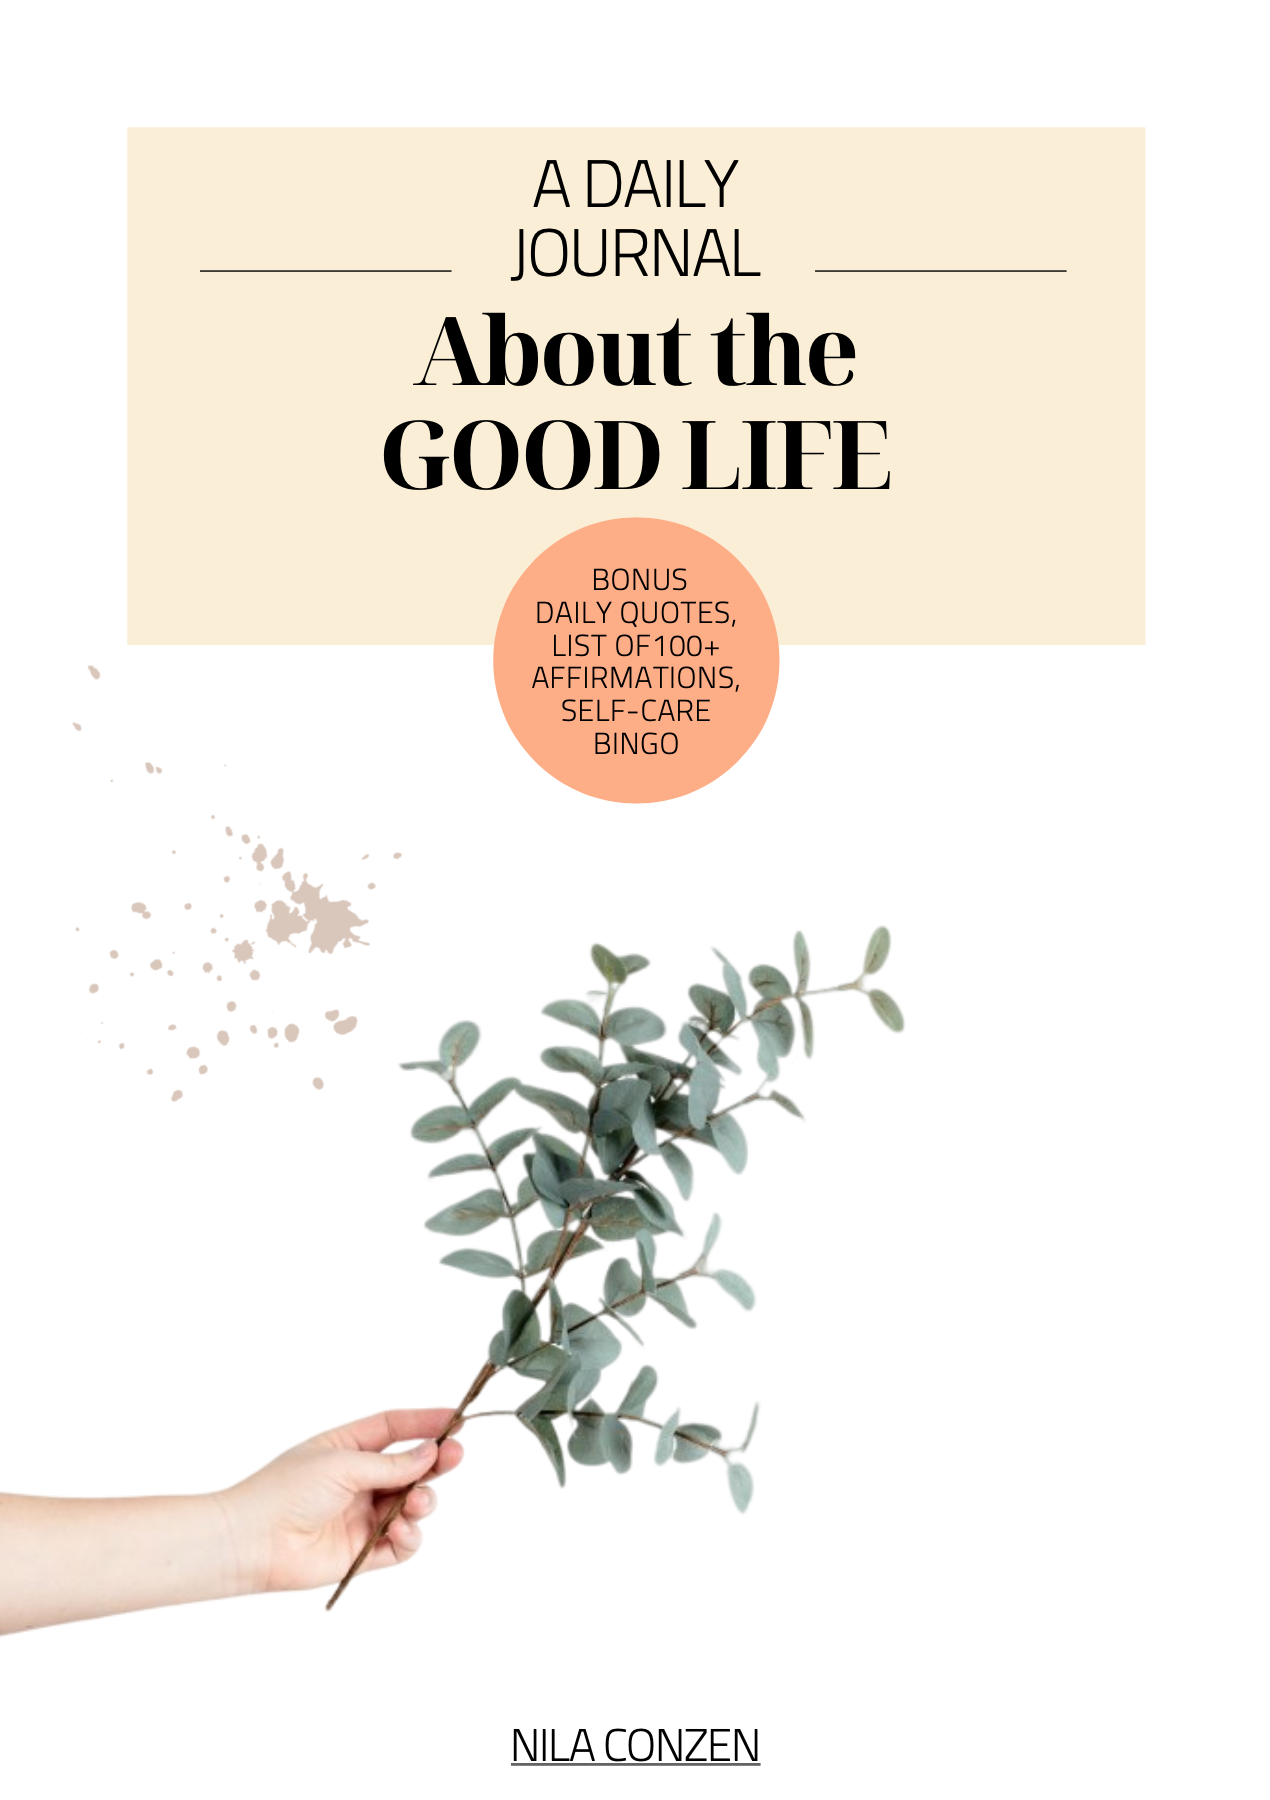 About the good life journal Nila Conzen